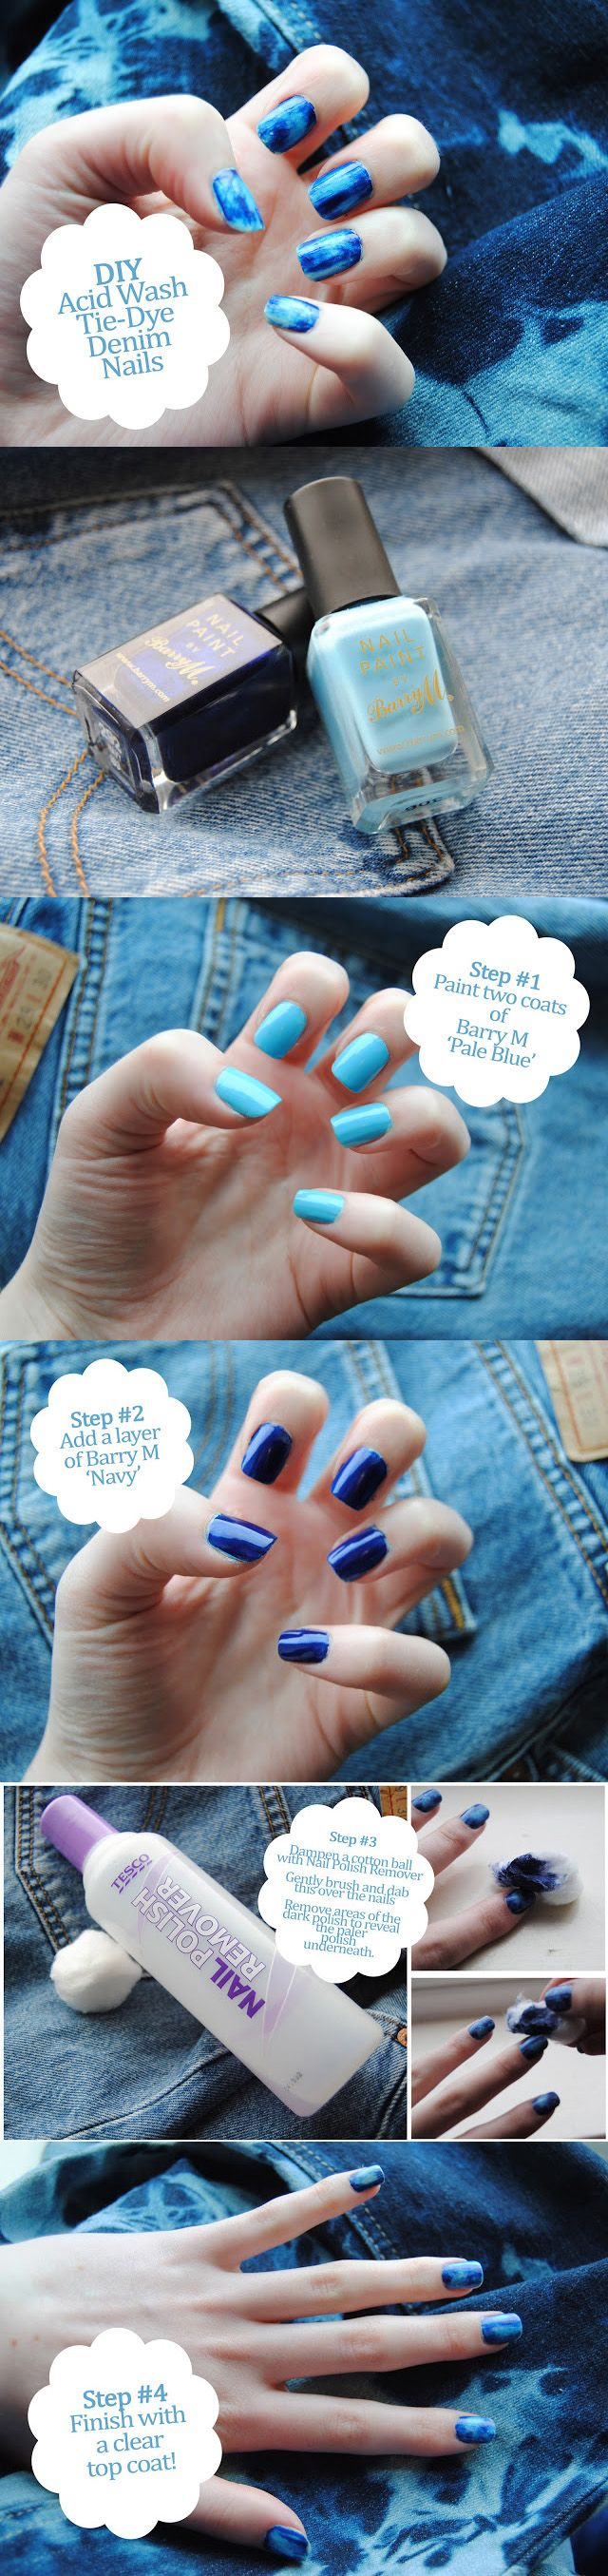 Bleached Nails Tutorial